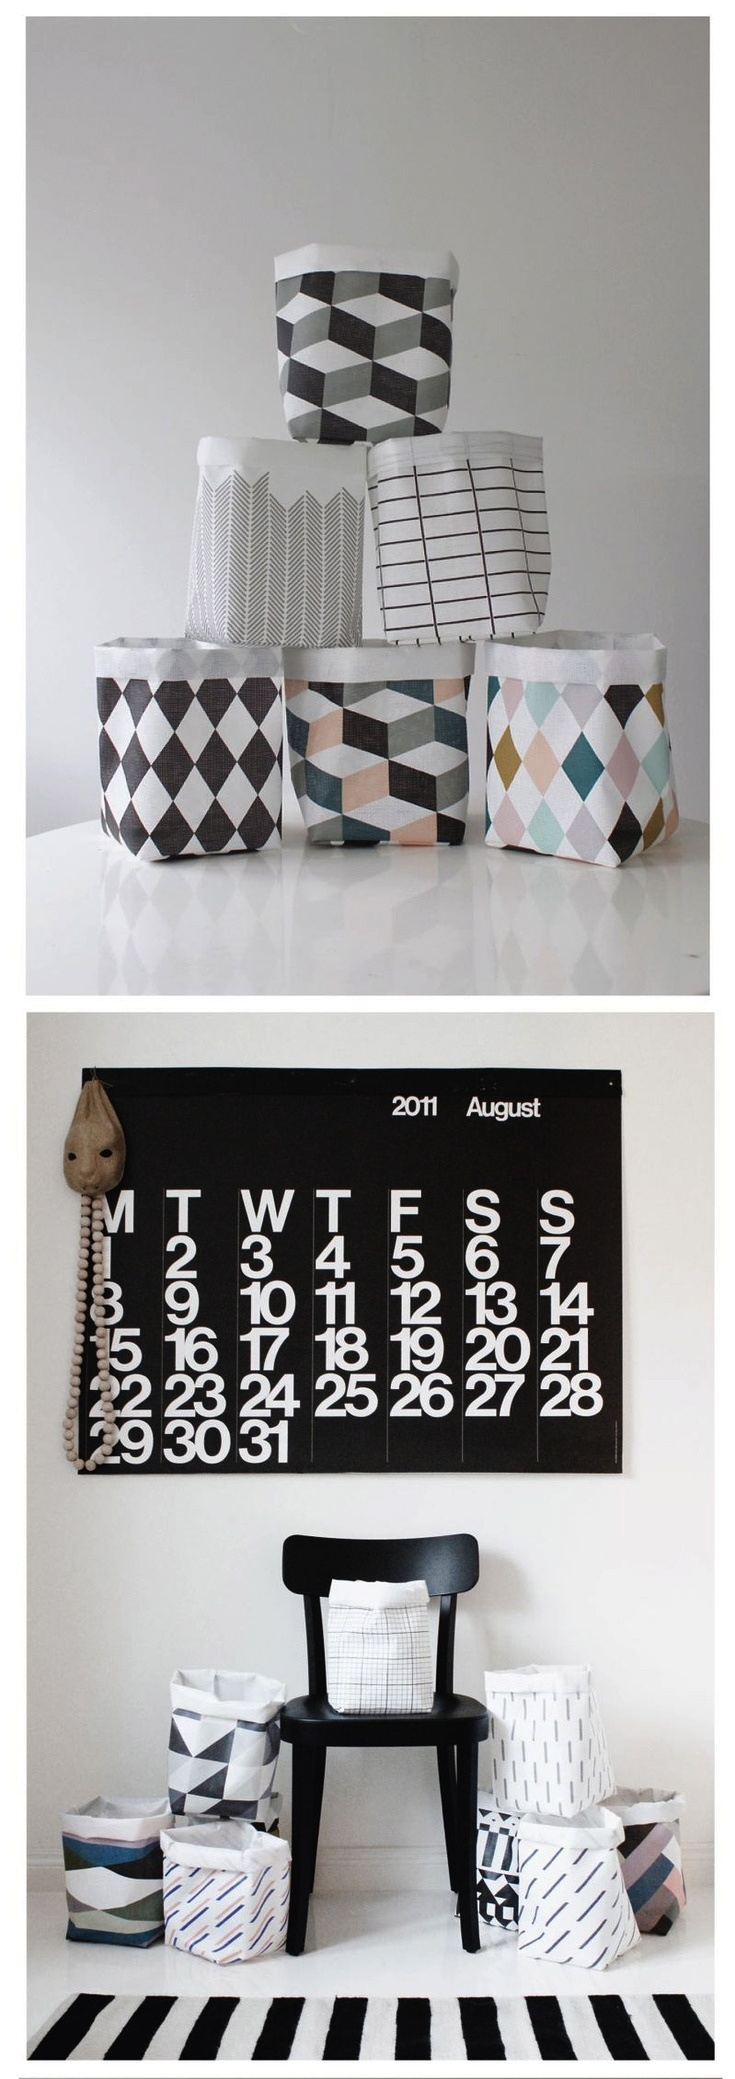 Via Sunset Gurl Design | Vaprunen Sack | Stendig Calendar | Black and White